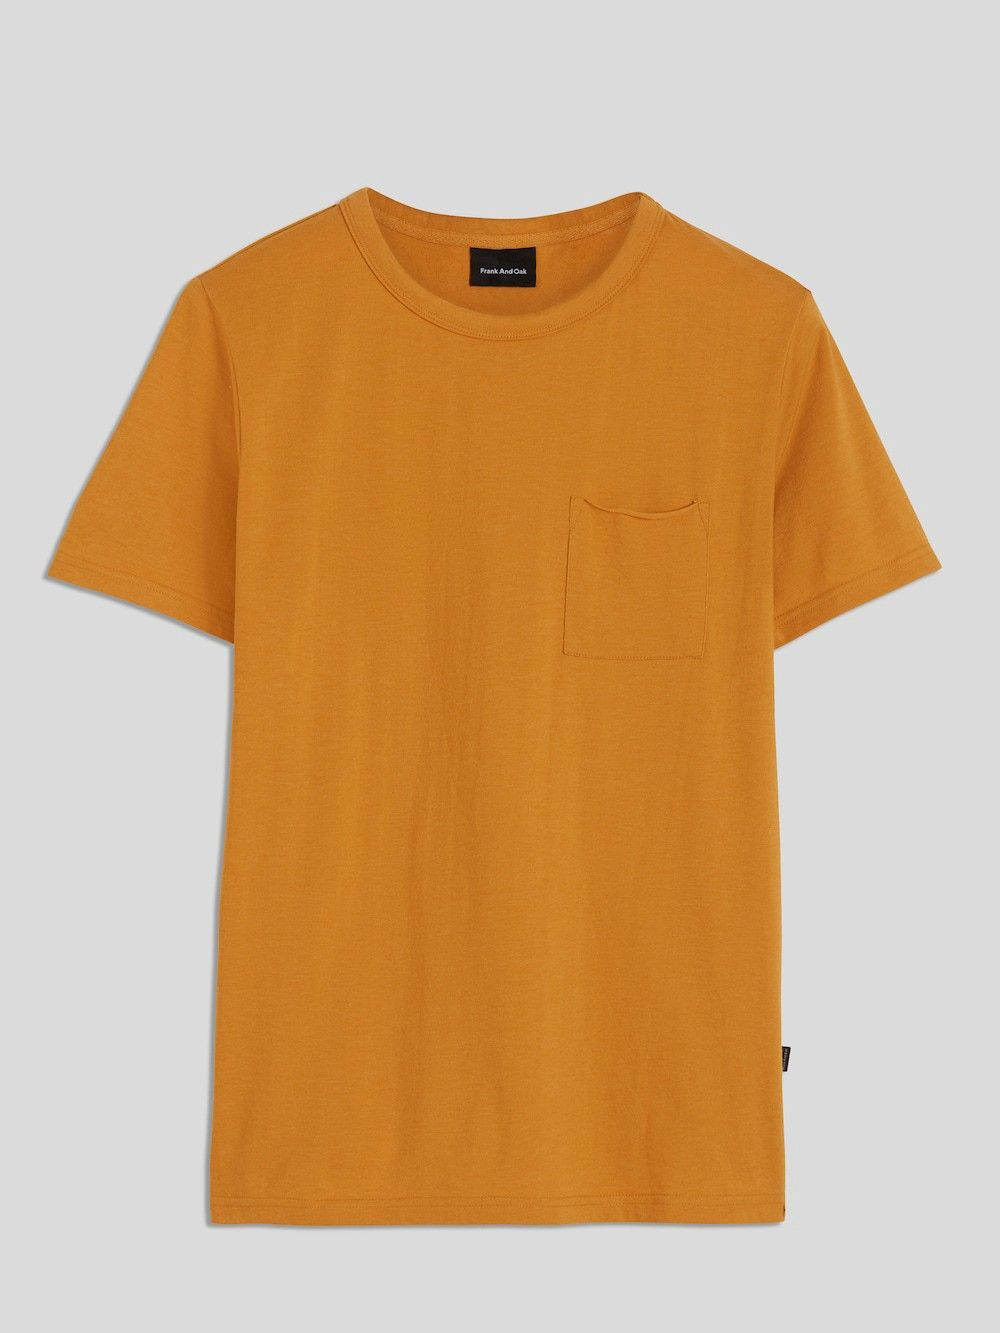 8d74699c21 Frank And Oak Loose Fit Organic Cotton-Blend T-Shirt In Gold - XS ...